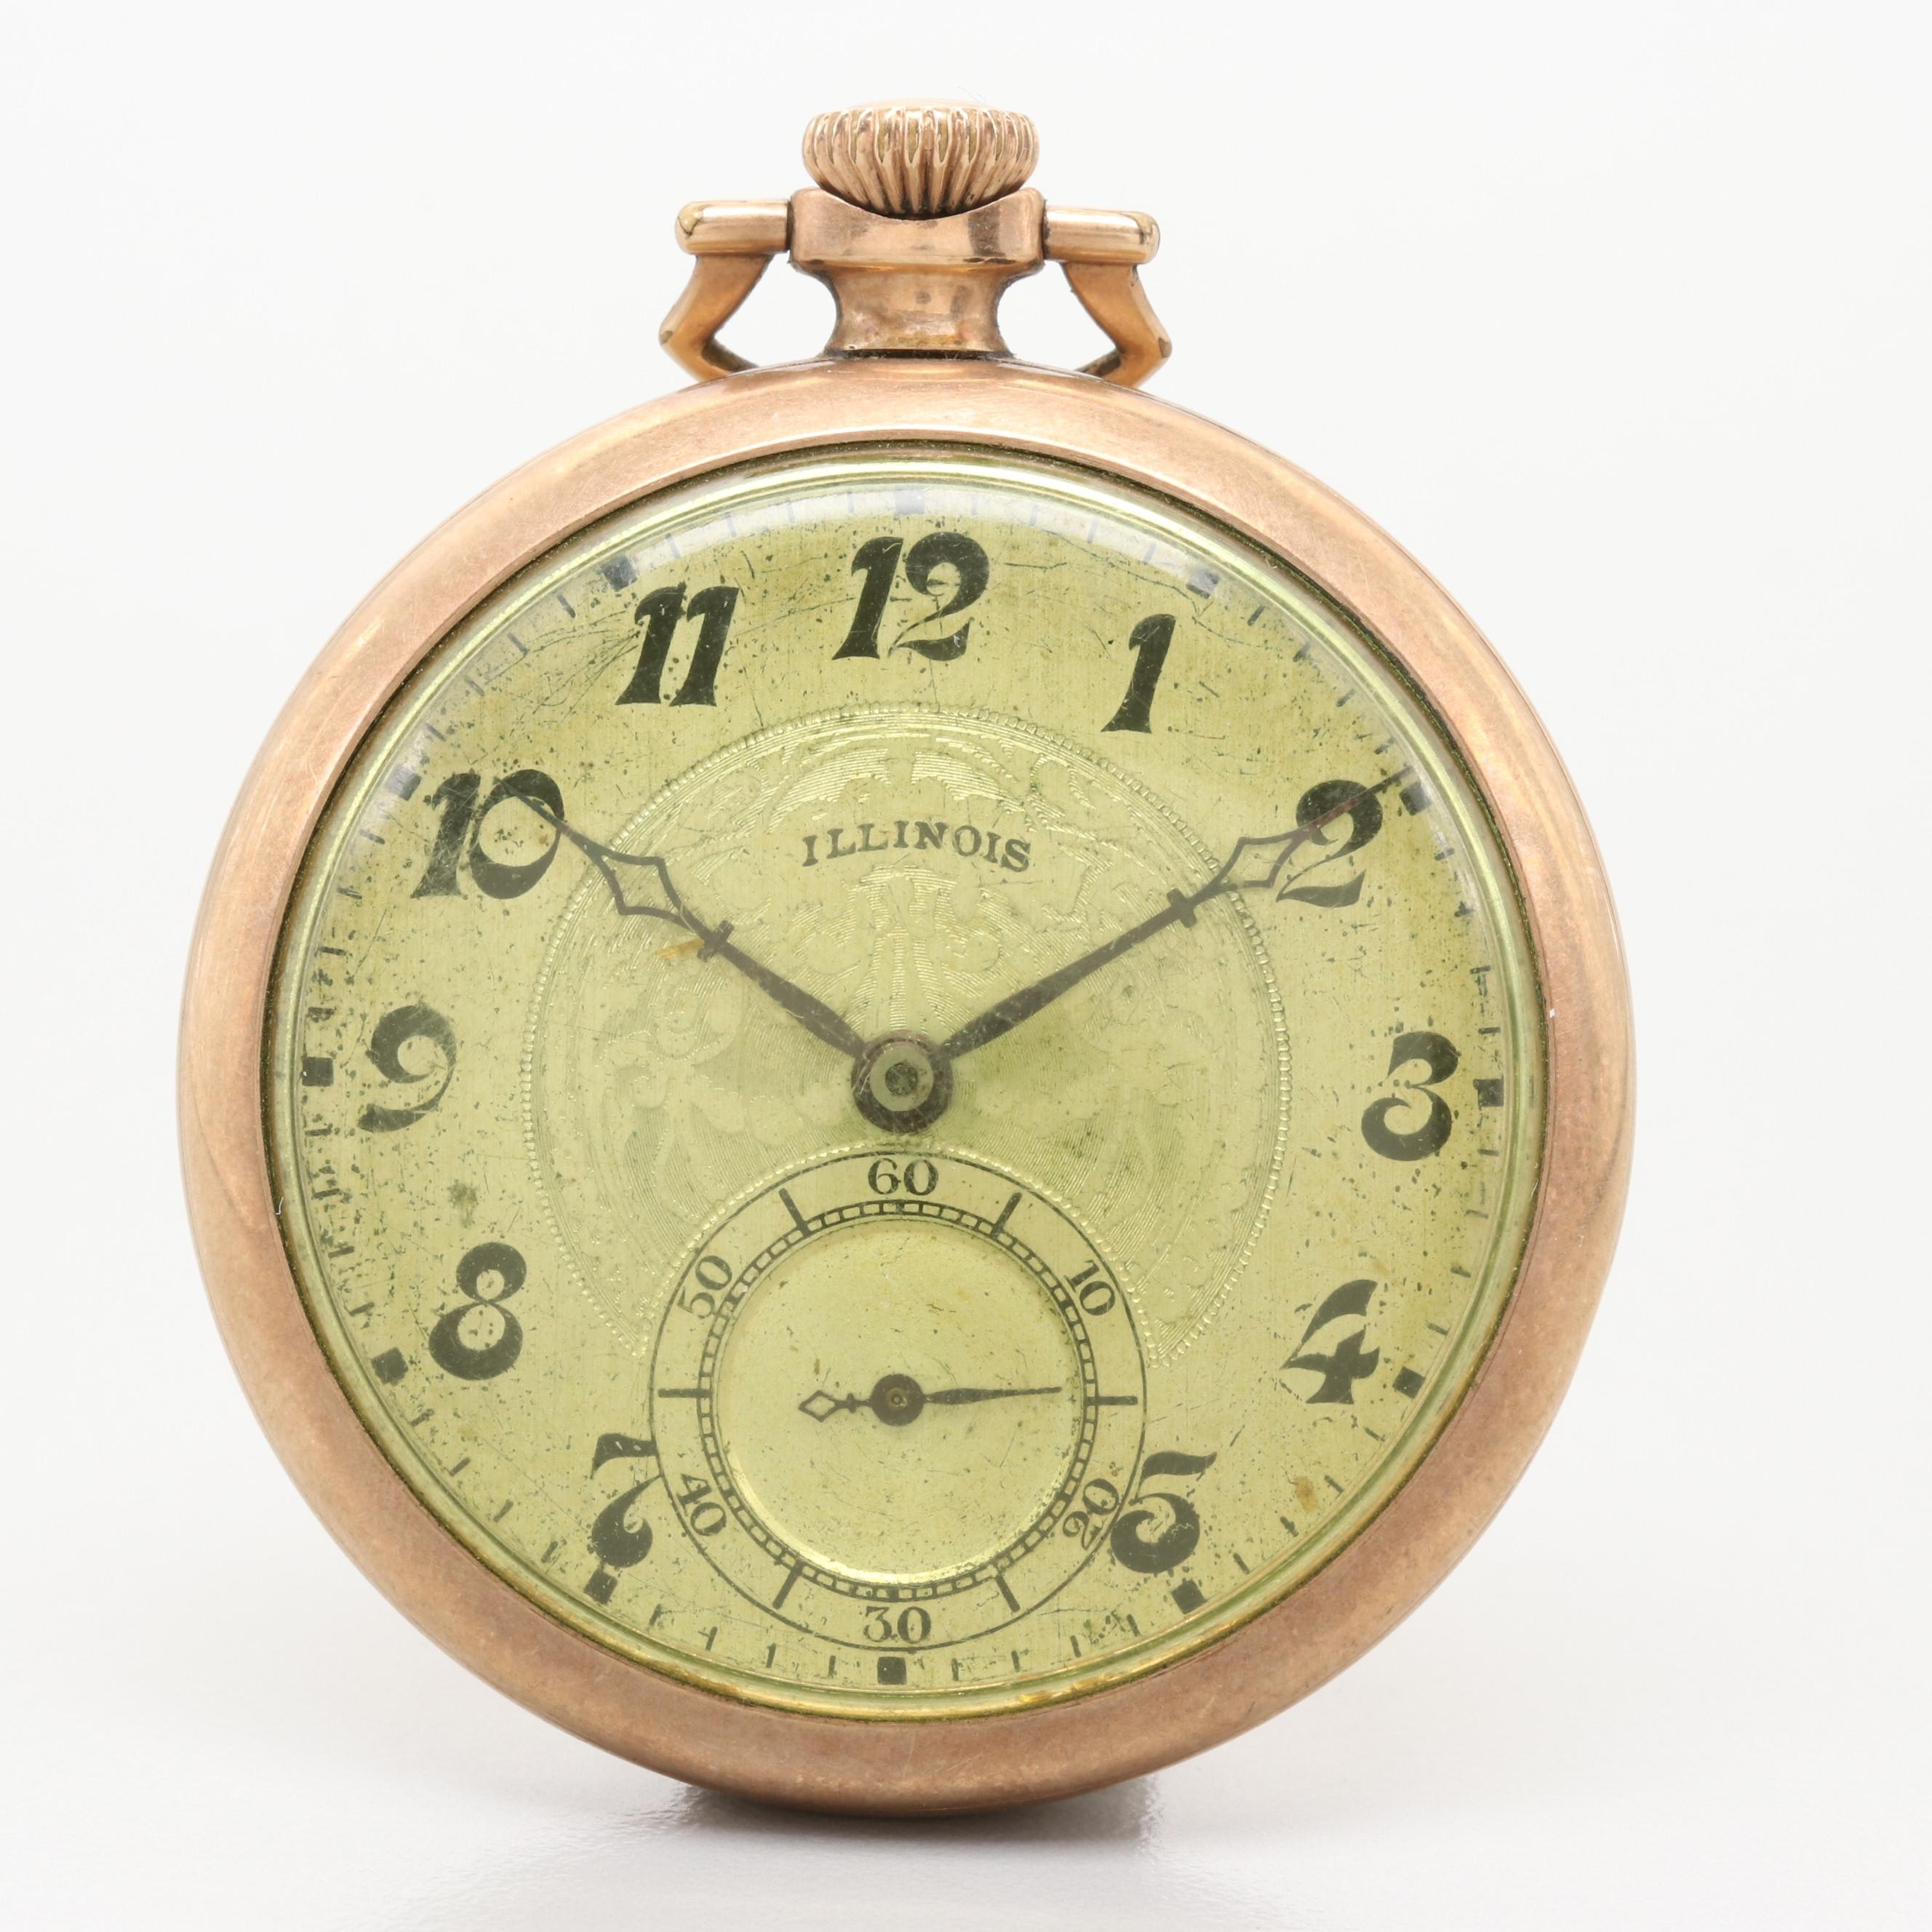 Illinois 10K Gold Filled Pocket Watch, 1926